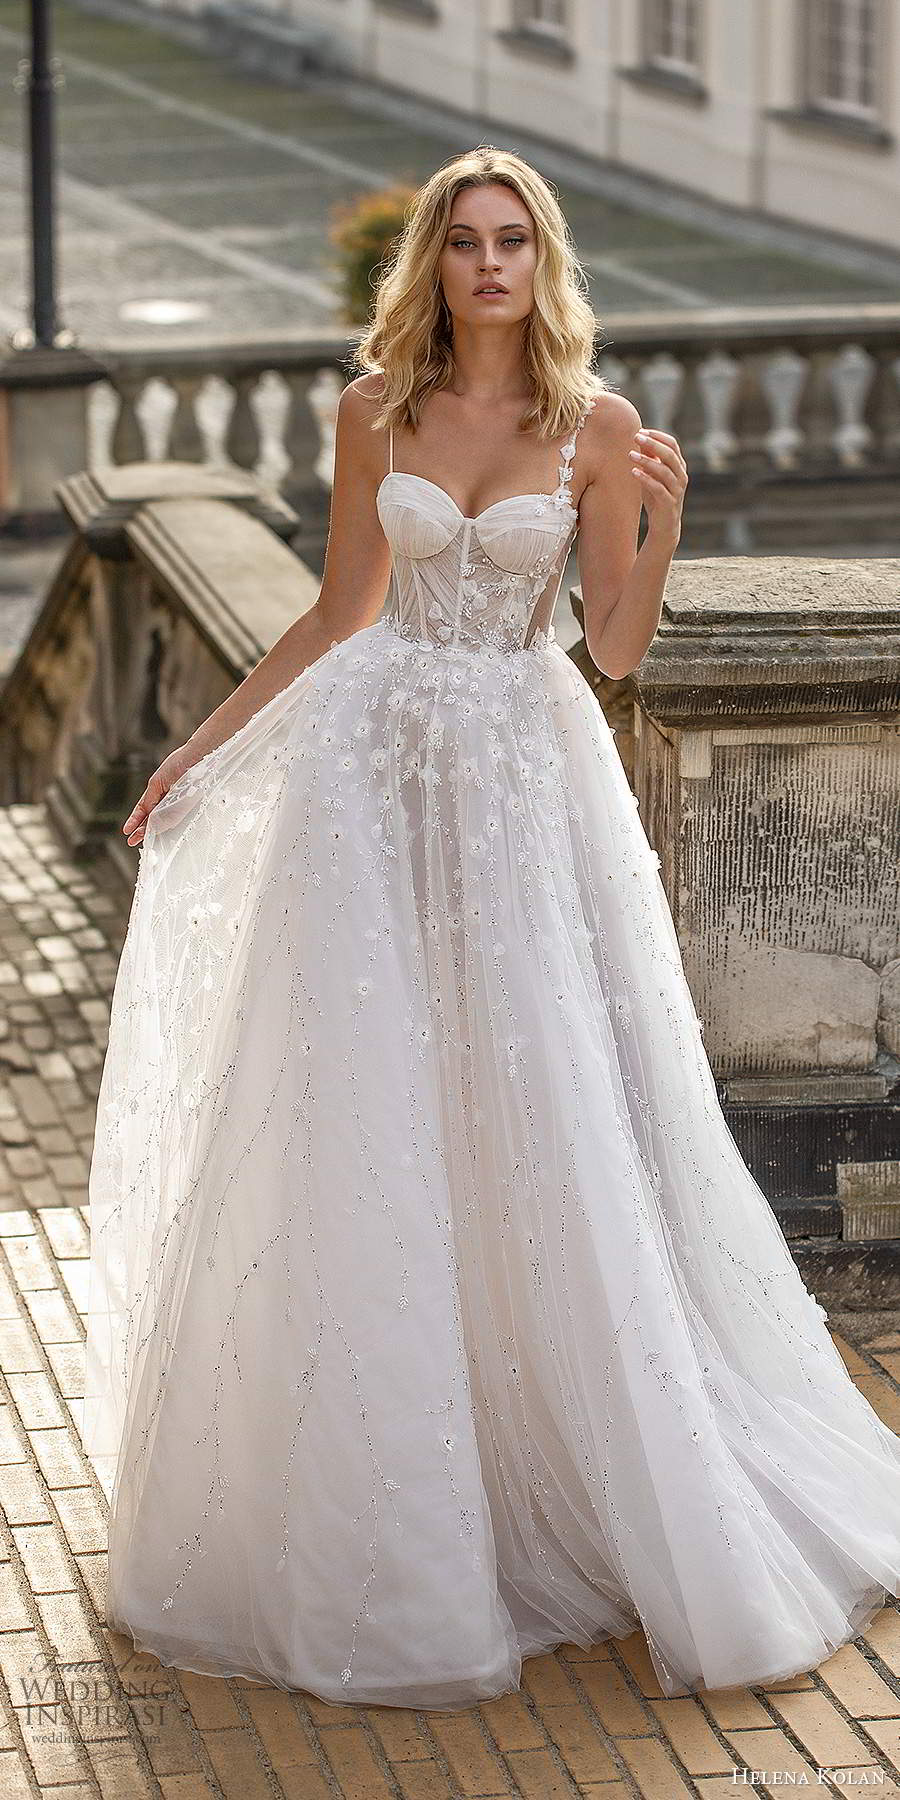 helena kolan 2020 bridal sleeveless thin straps sweetheart nevkline corset bodice fully embellished romantic a line ball gown wedding dress (5) mv